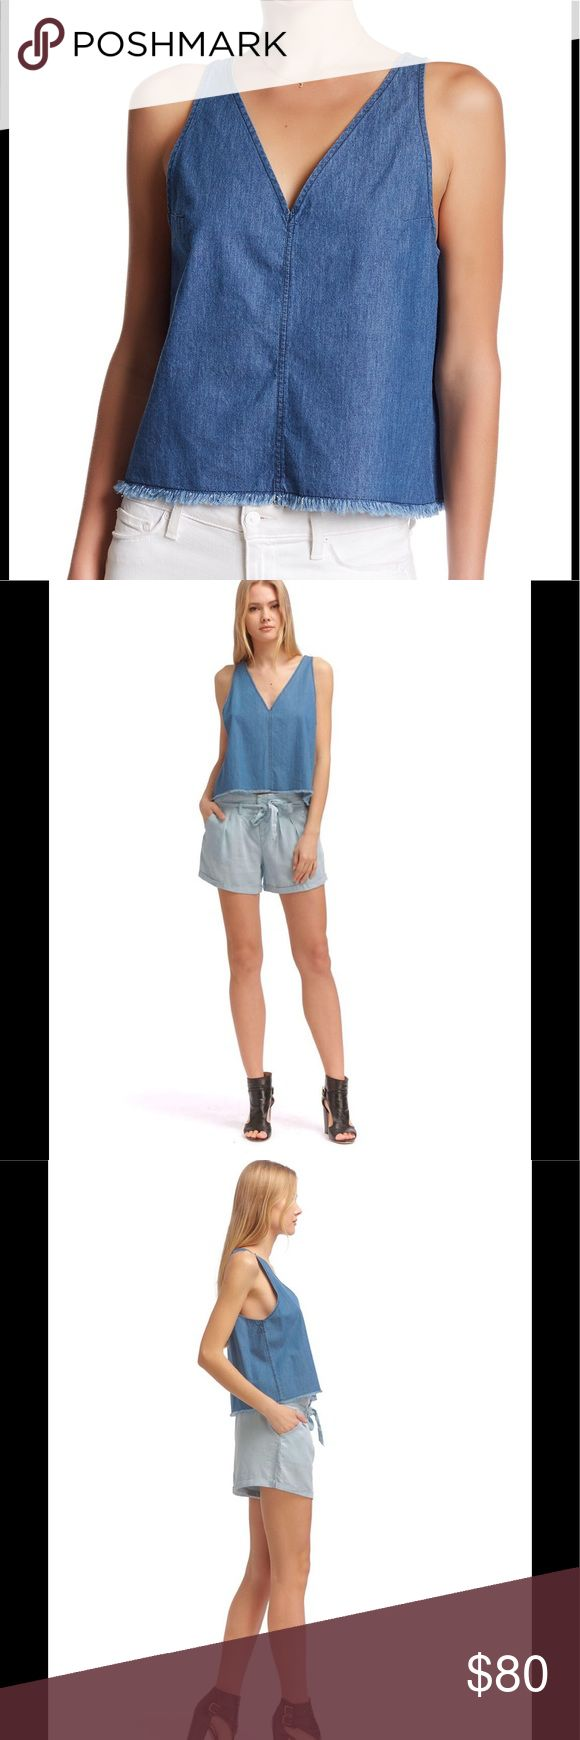 Walter Baker Spangler Top Sleeveless top. V-neck? Check. Denim? Check. The Spangler top has everything on your list! Walter Baker Tops Blouses